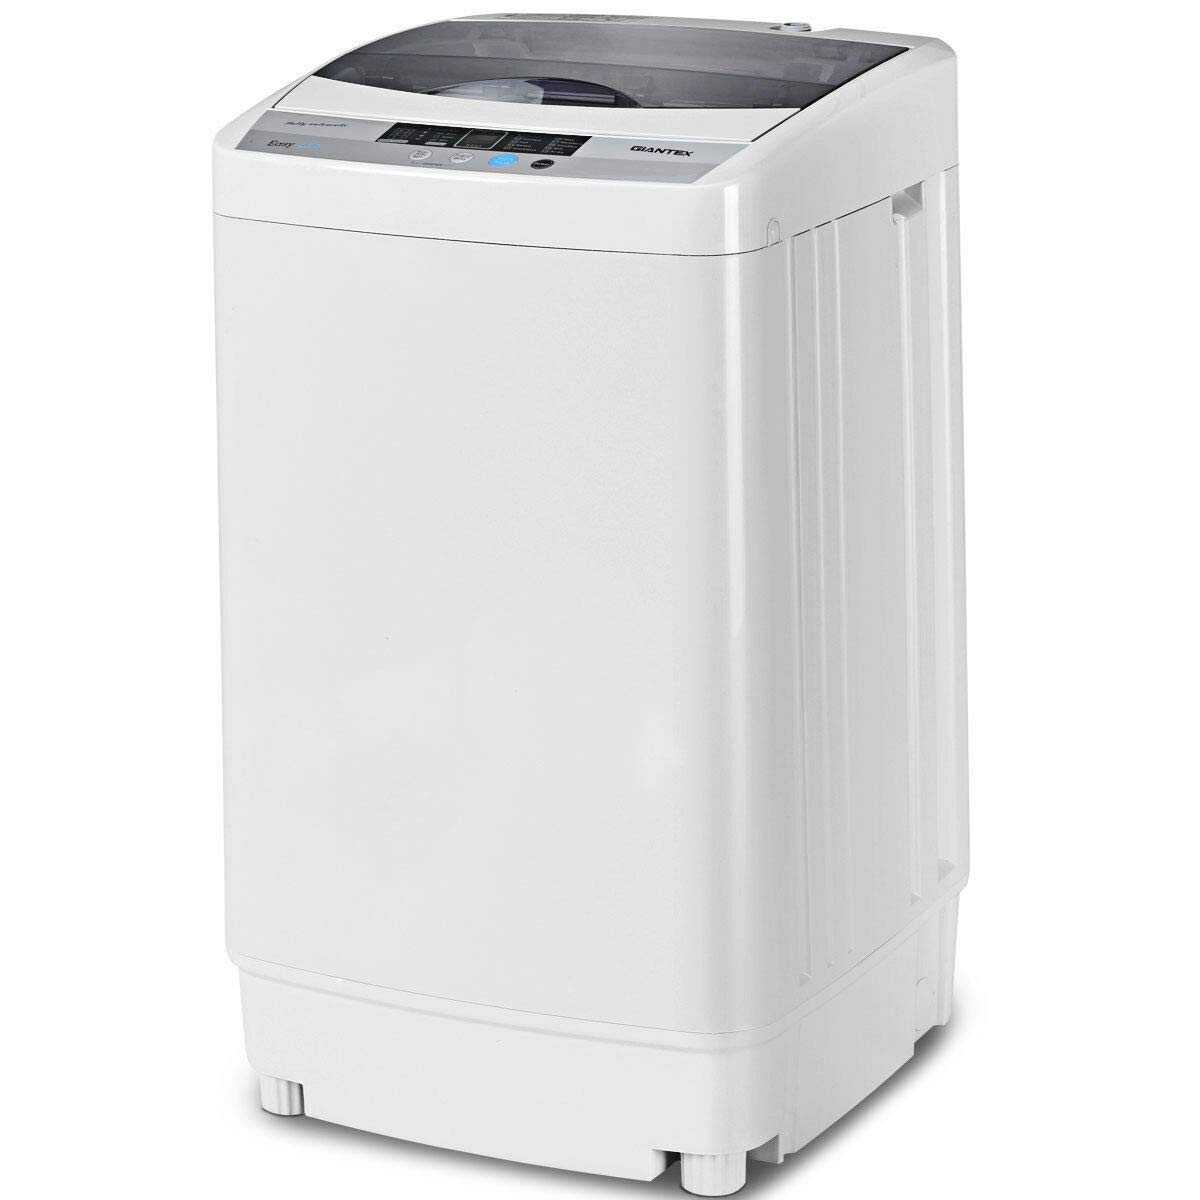 LHONE Full-Automatic Washing Machine 1.6 Cu.ft Portable Compact Mini Multifunctional Full Automatic Laundry Washer Spin Dryer with Drain Pump & LED Display Top Load